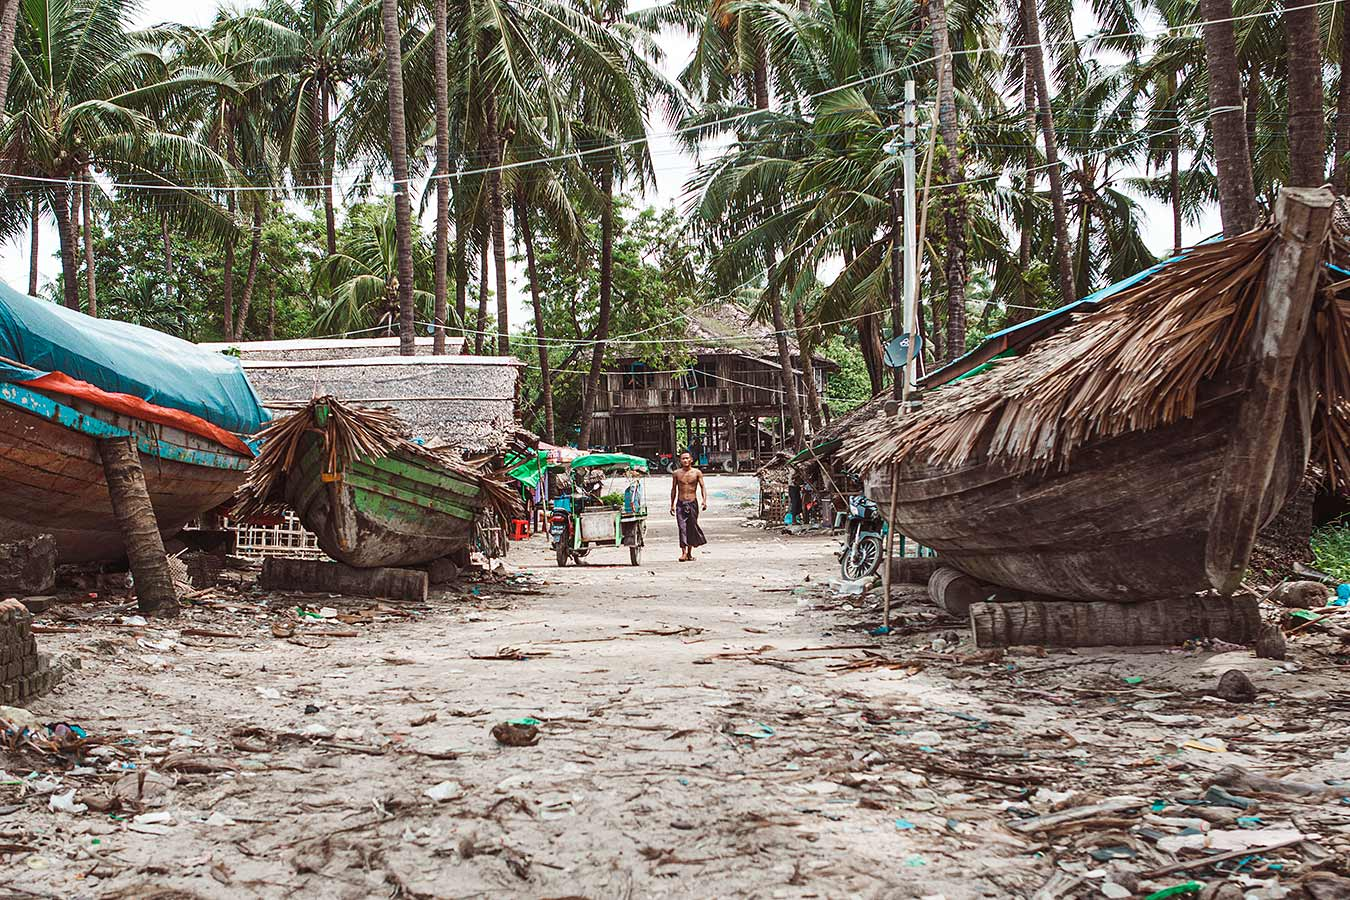 Village scene with boats - fishing village in Southeast Asia